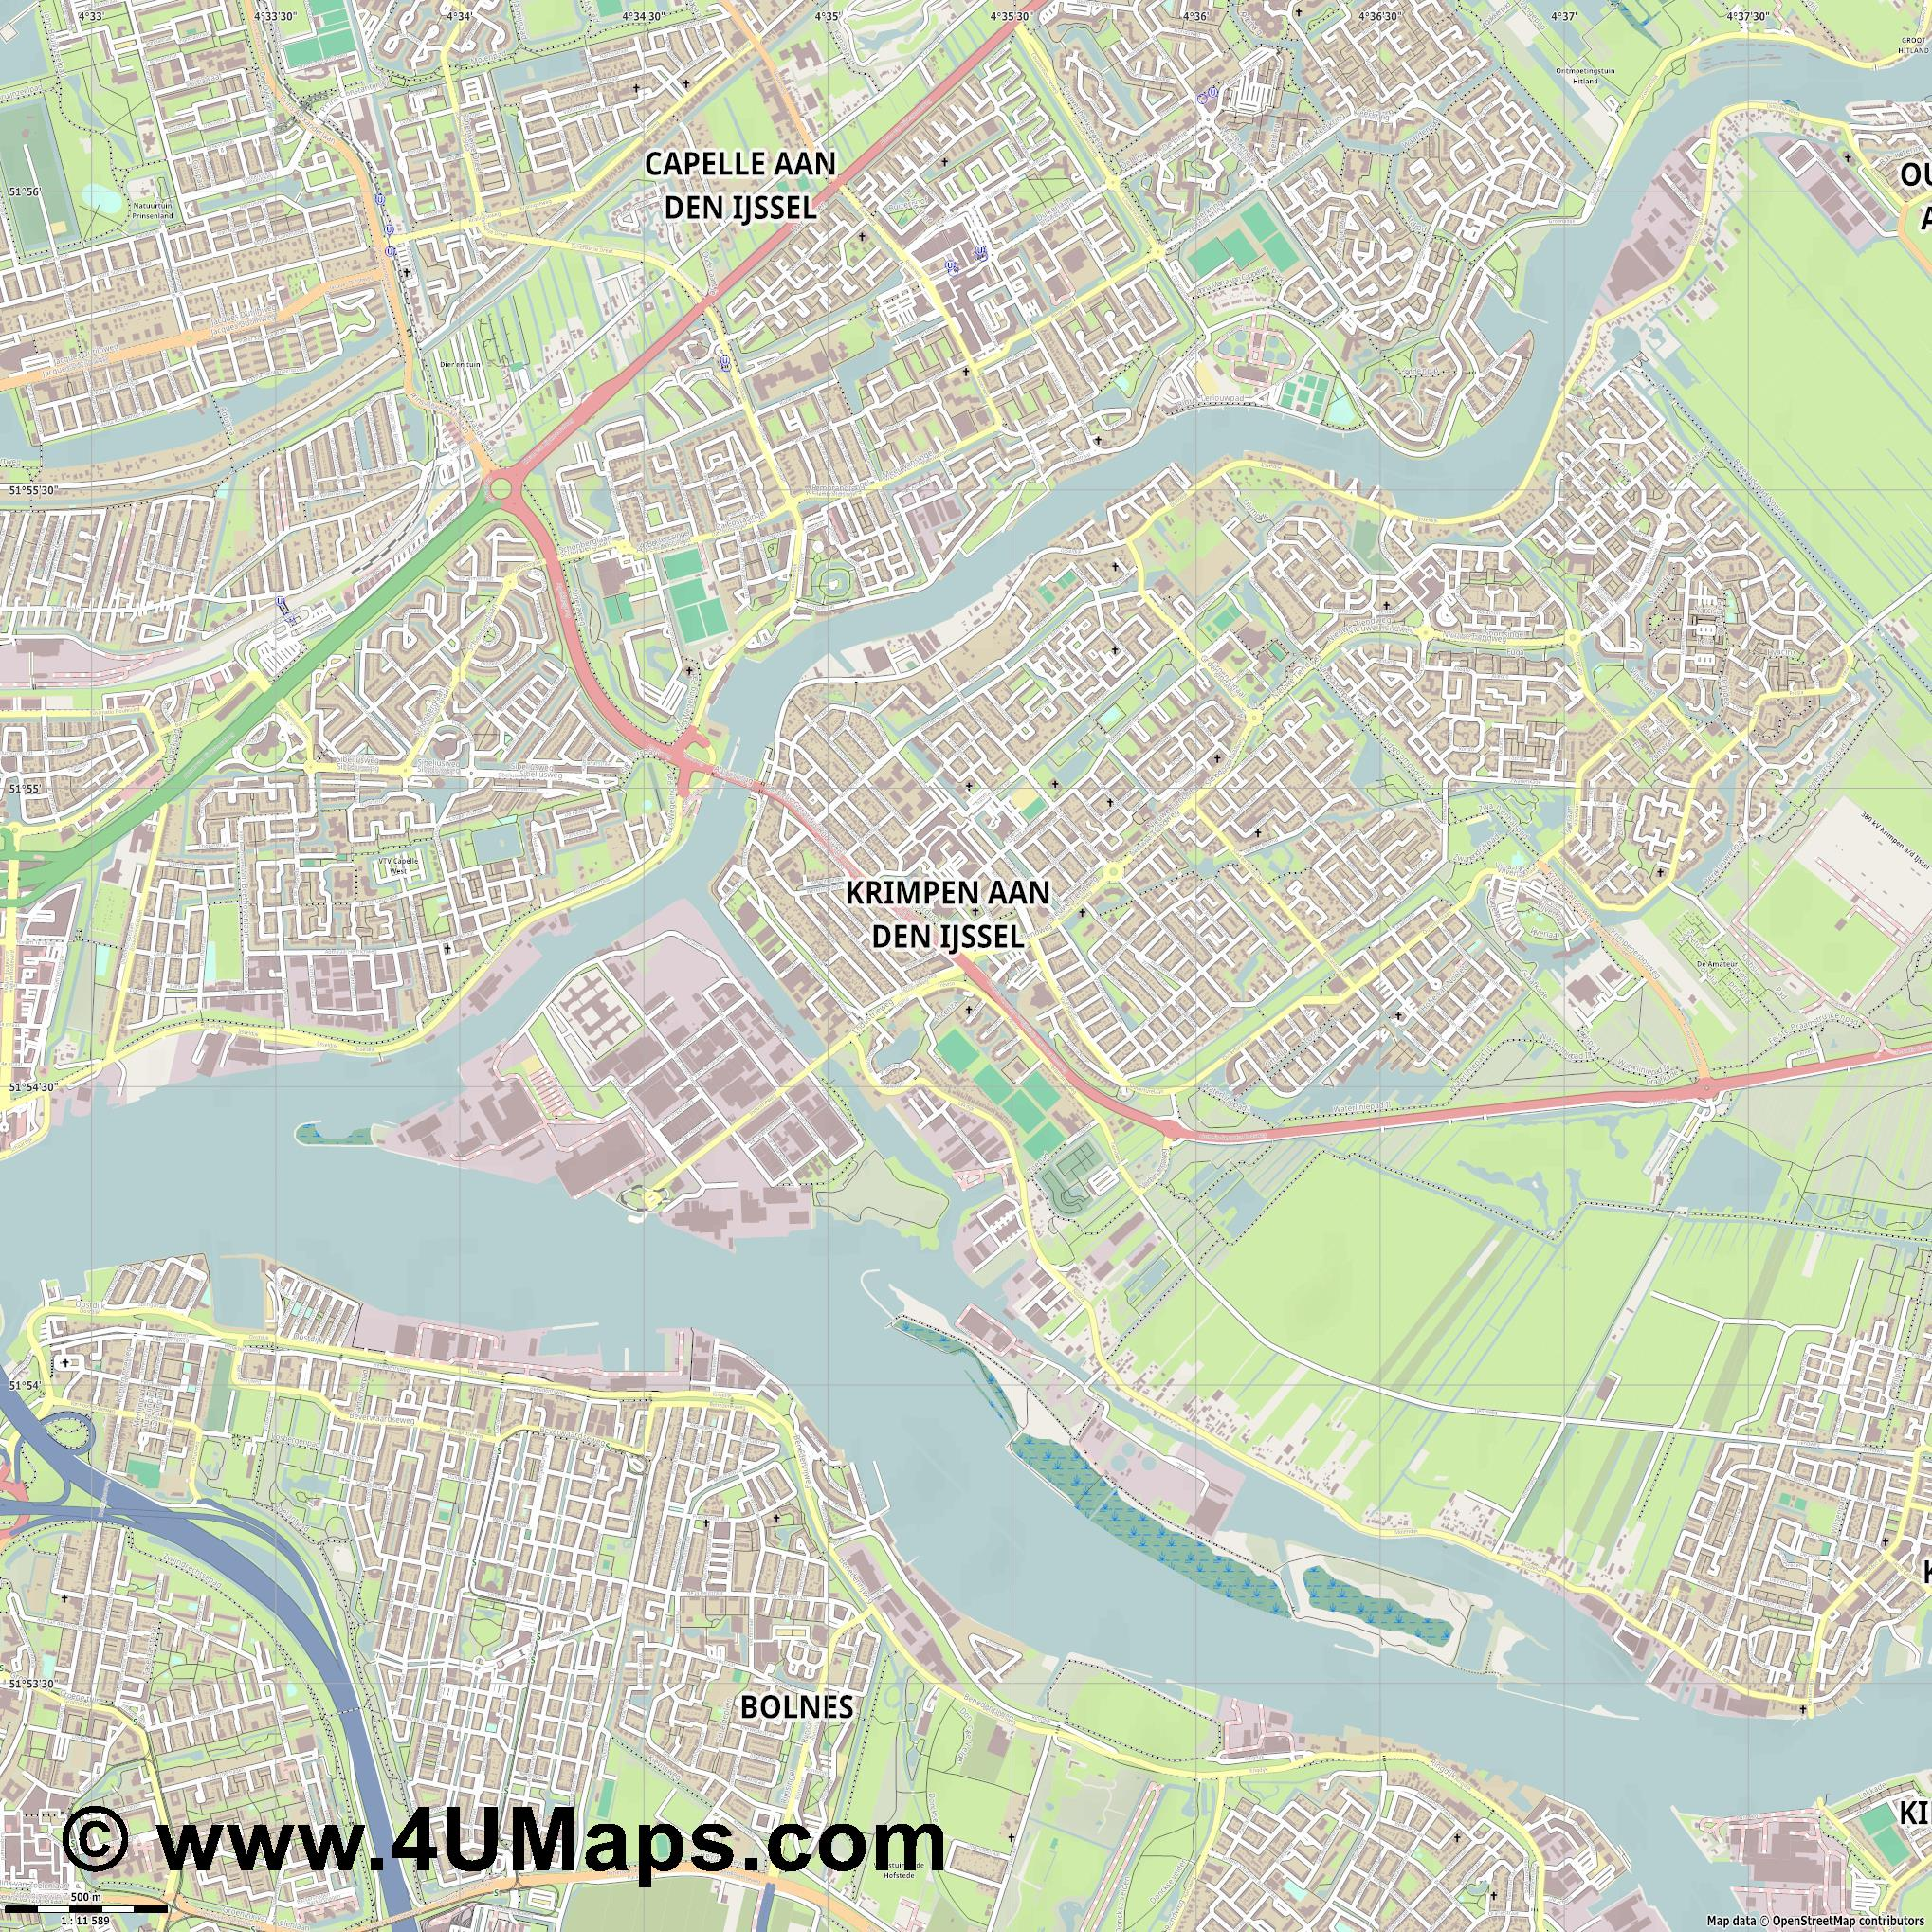 Krimpen aan den IJssel  jpg ultra high detail preview vector city map